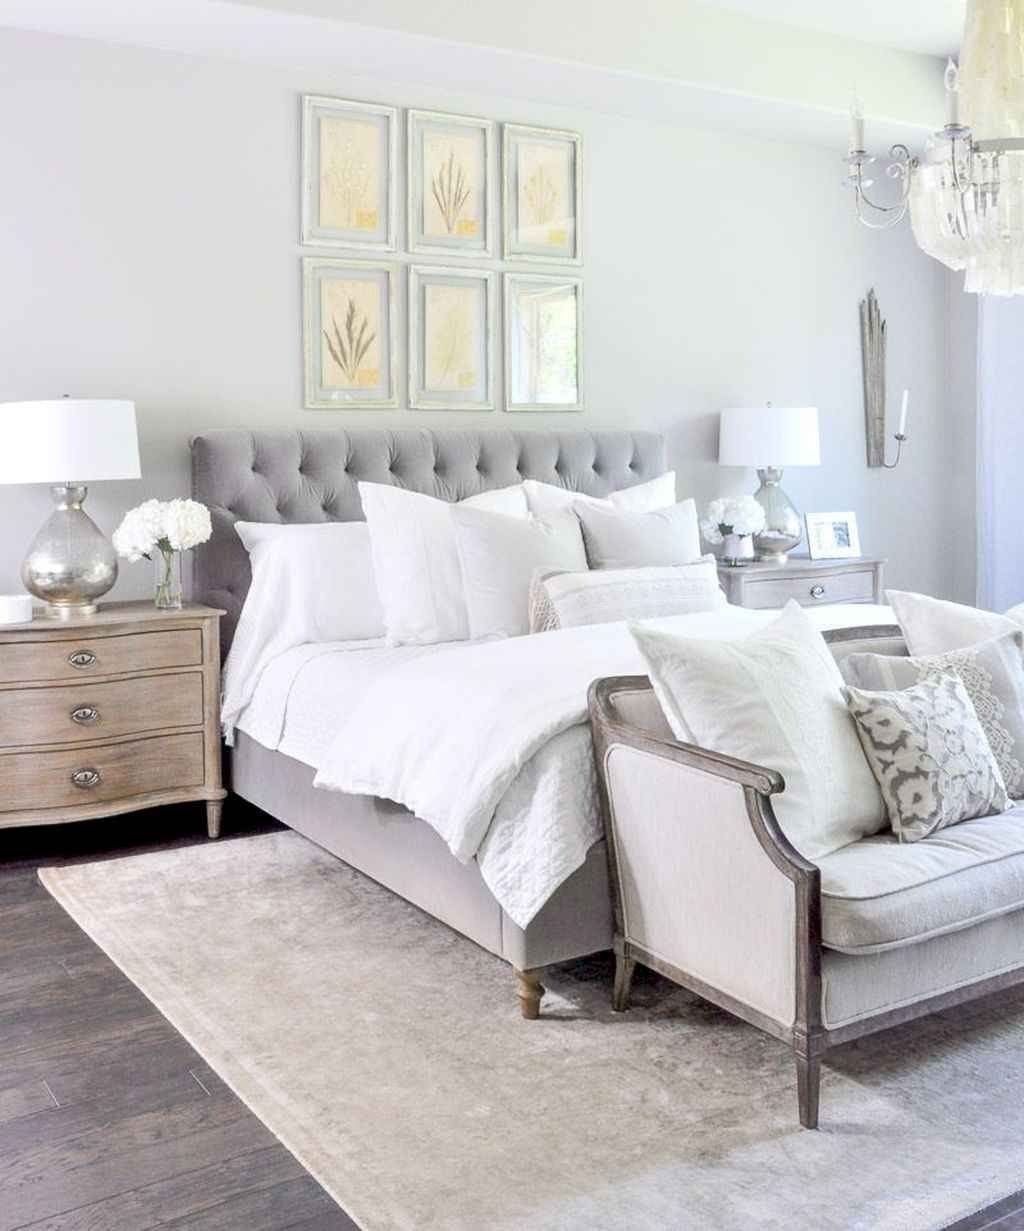 Grey and Gold Bedroom Ideas Elegant 60 Rustic Coastal Master Bedroom Ideas